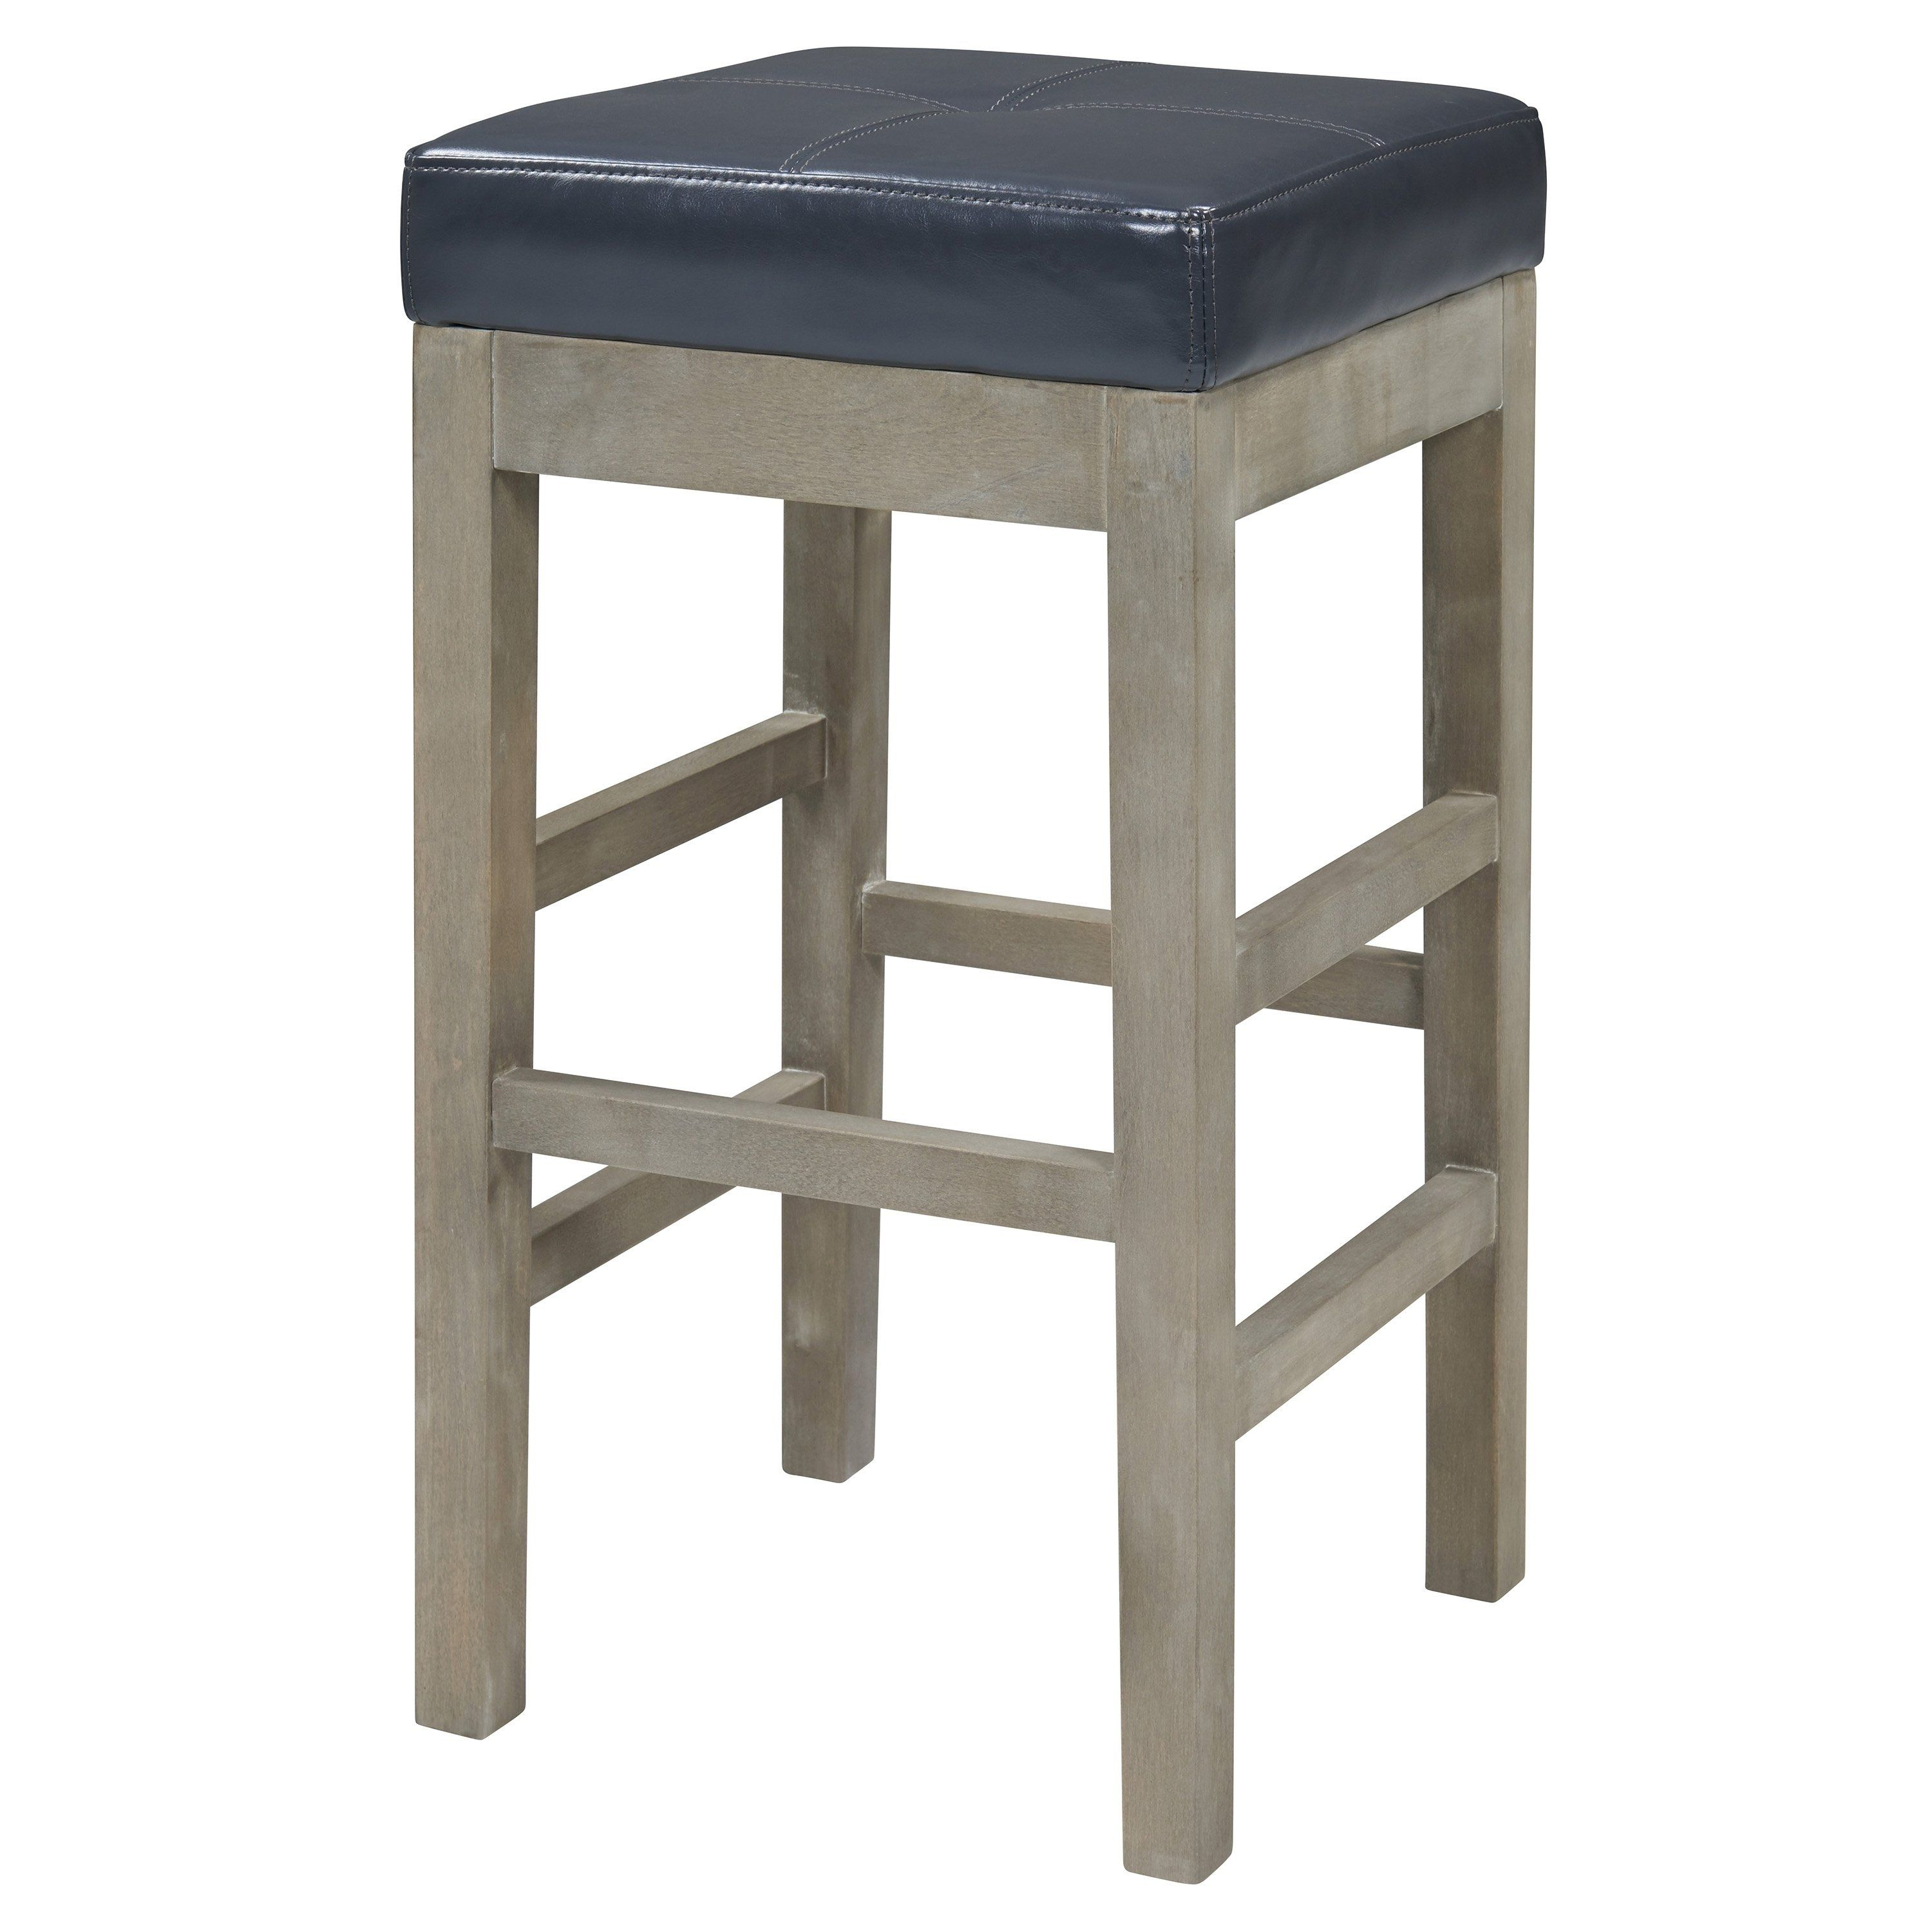 Valencia Bonded Leather Backless Counter Stool Black Backless